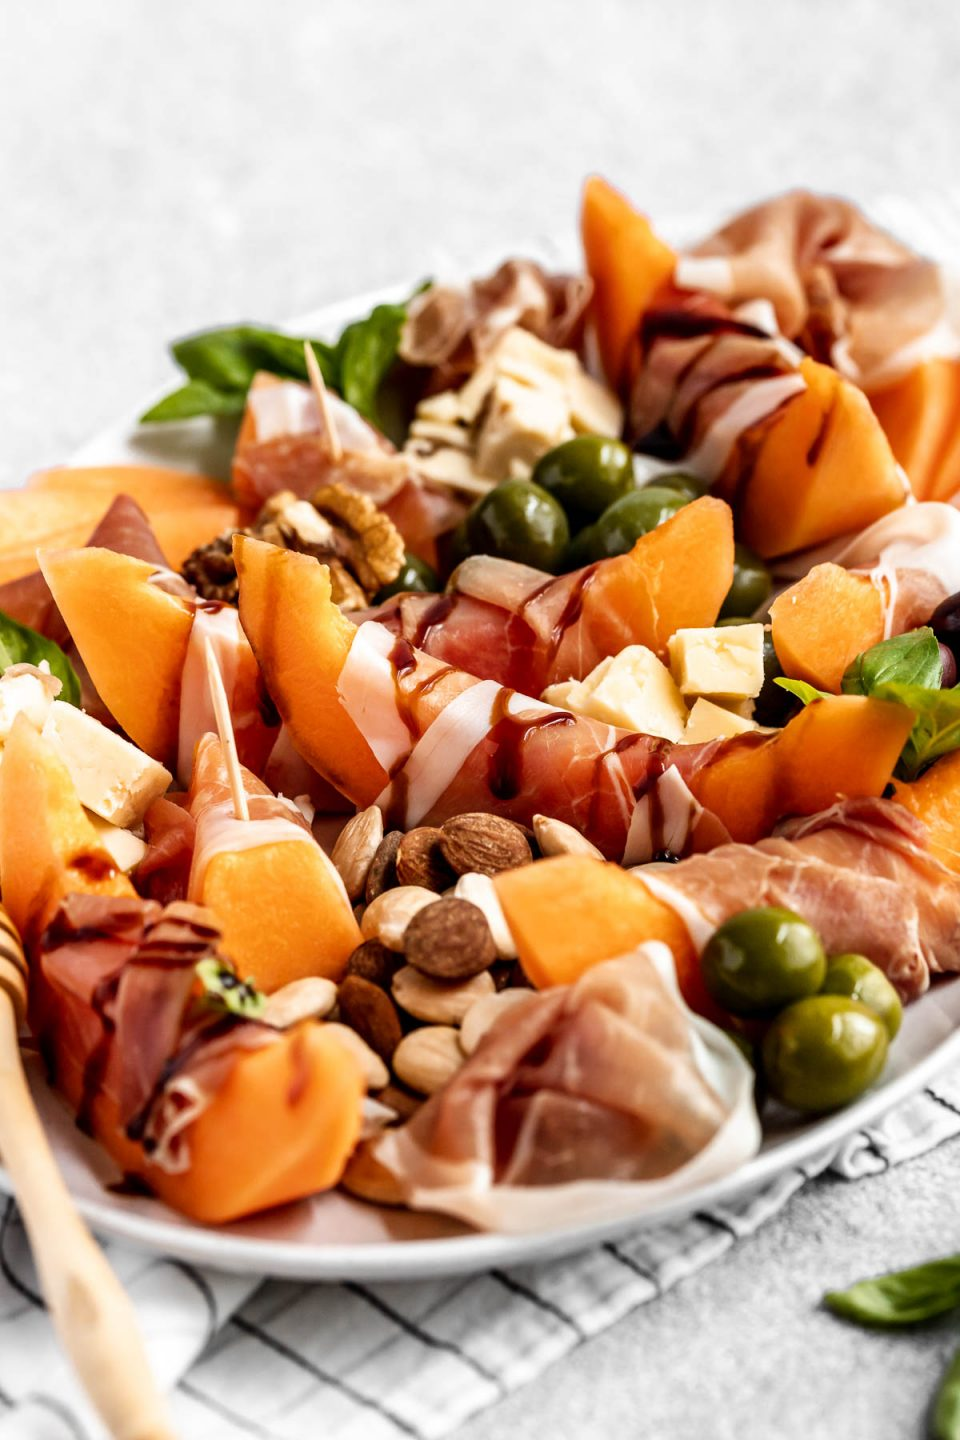 Side angle of prosciutto and melon cheese board! Prosciutto-Wrapped Cantaloupe on a large serving platter with olives, nuts, cheese, & fresh basil leaves. Some pieces of prosciutto-wrapped melon are drizzled with balsamic syrup.